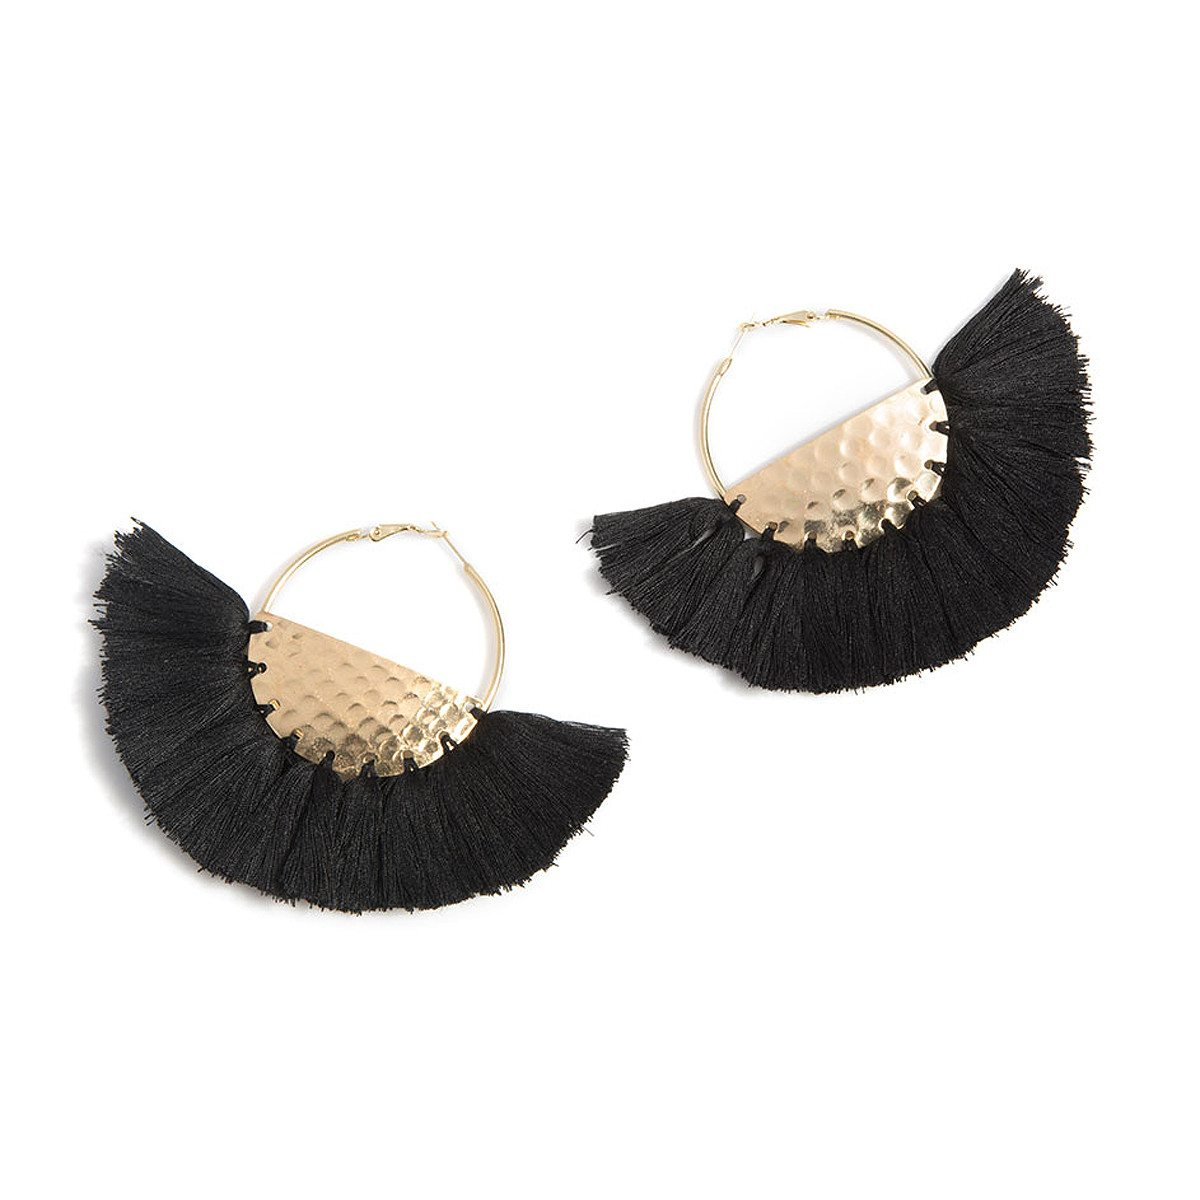 anyay-earrings-black-shopceladon